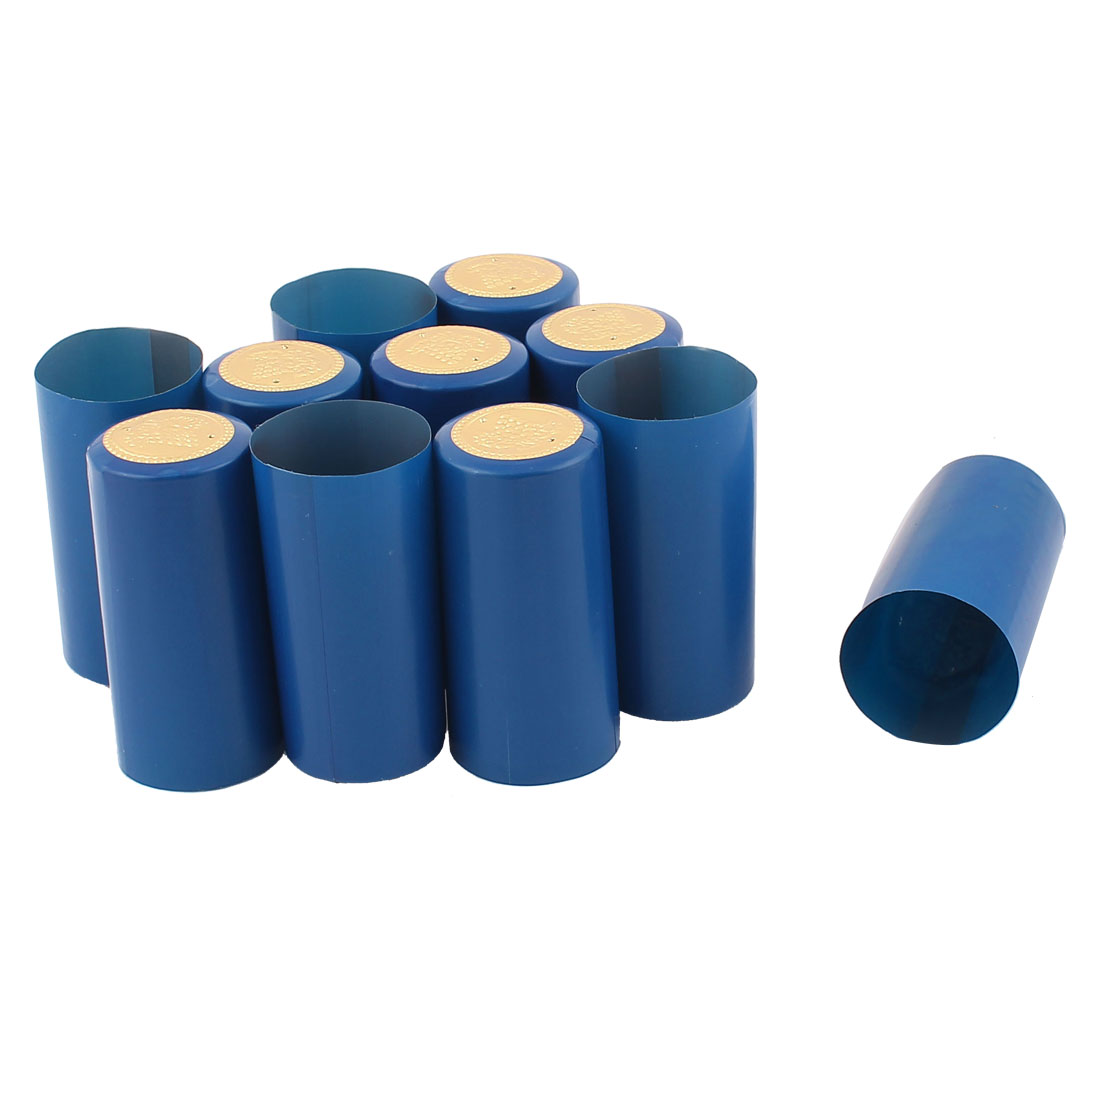 Winery Wine Bottle PVC Heat Shrink Tops Caps Capsules Blue 10PCS